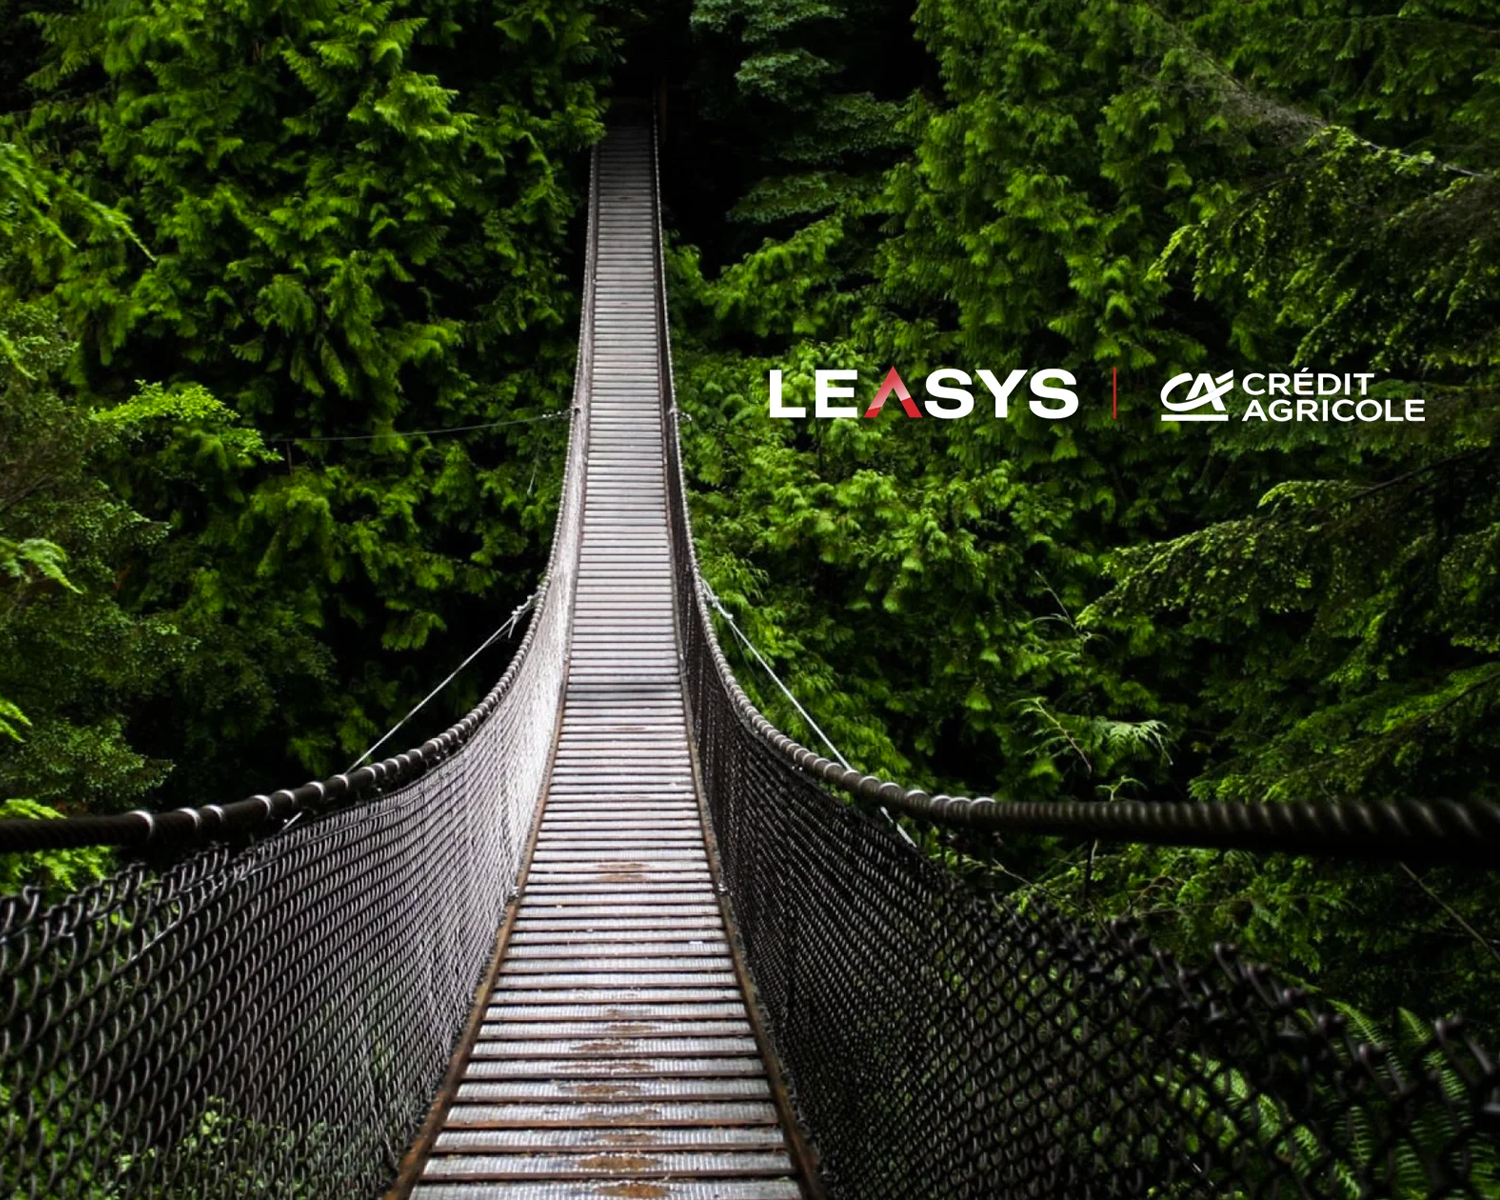 Leasys Credit Agricole